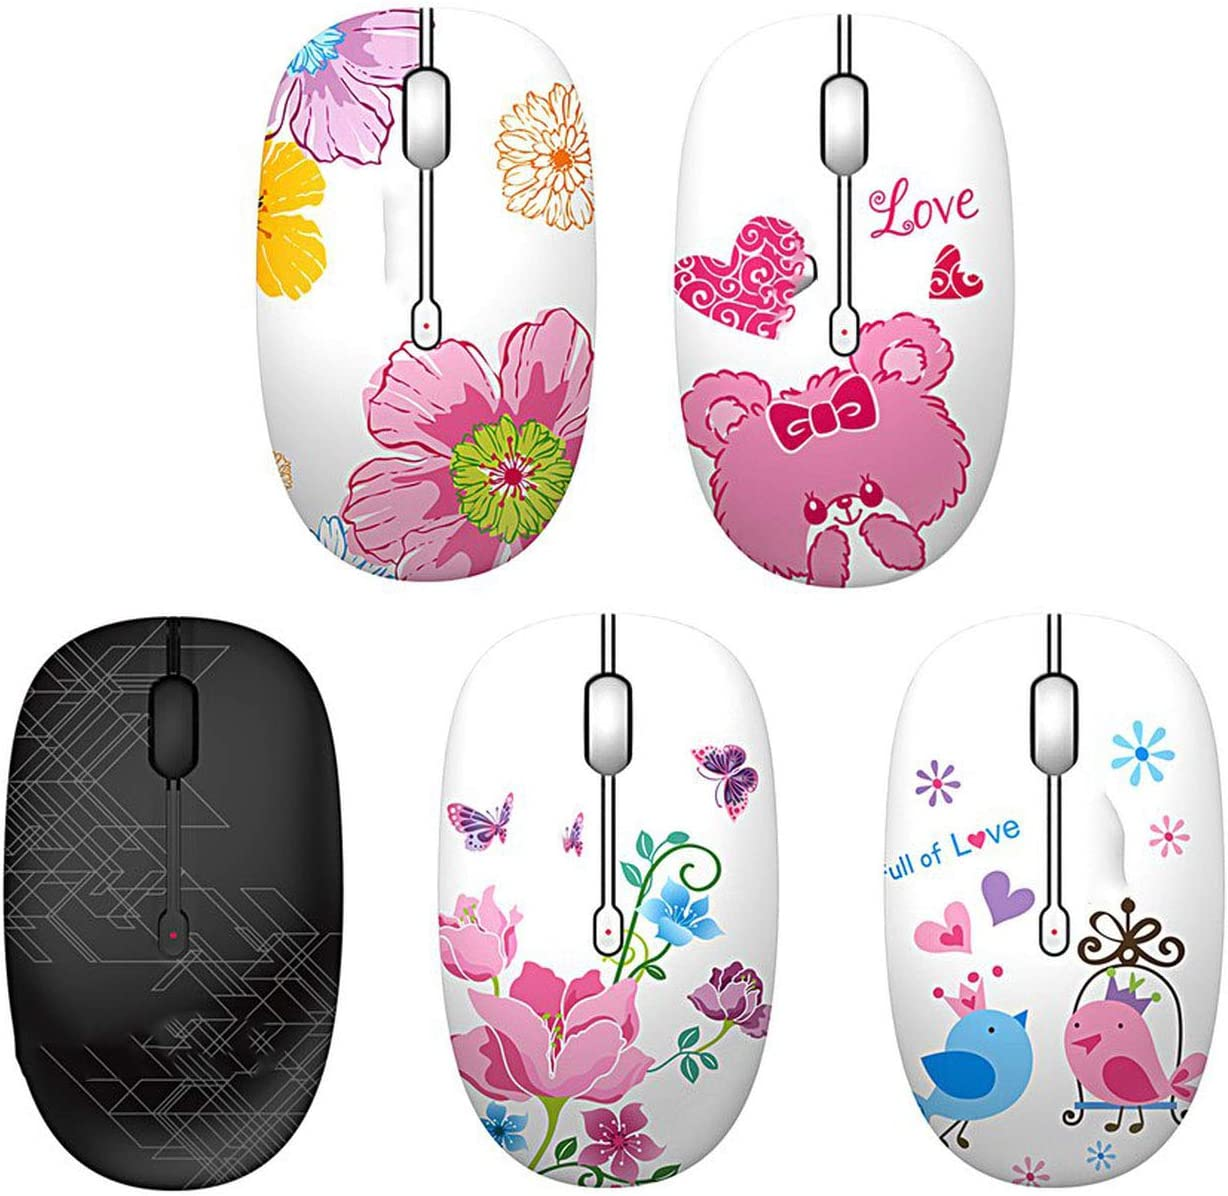 2.4G Wireless Mouse Exquisite Appearance 1600DPI Laptop Notebook Computer Wireless Optical Mouse,Butterfly,Poland